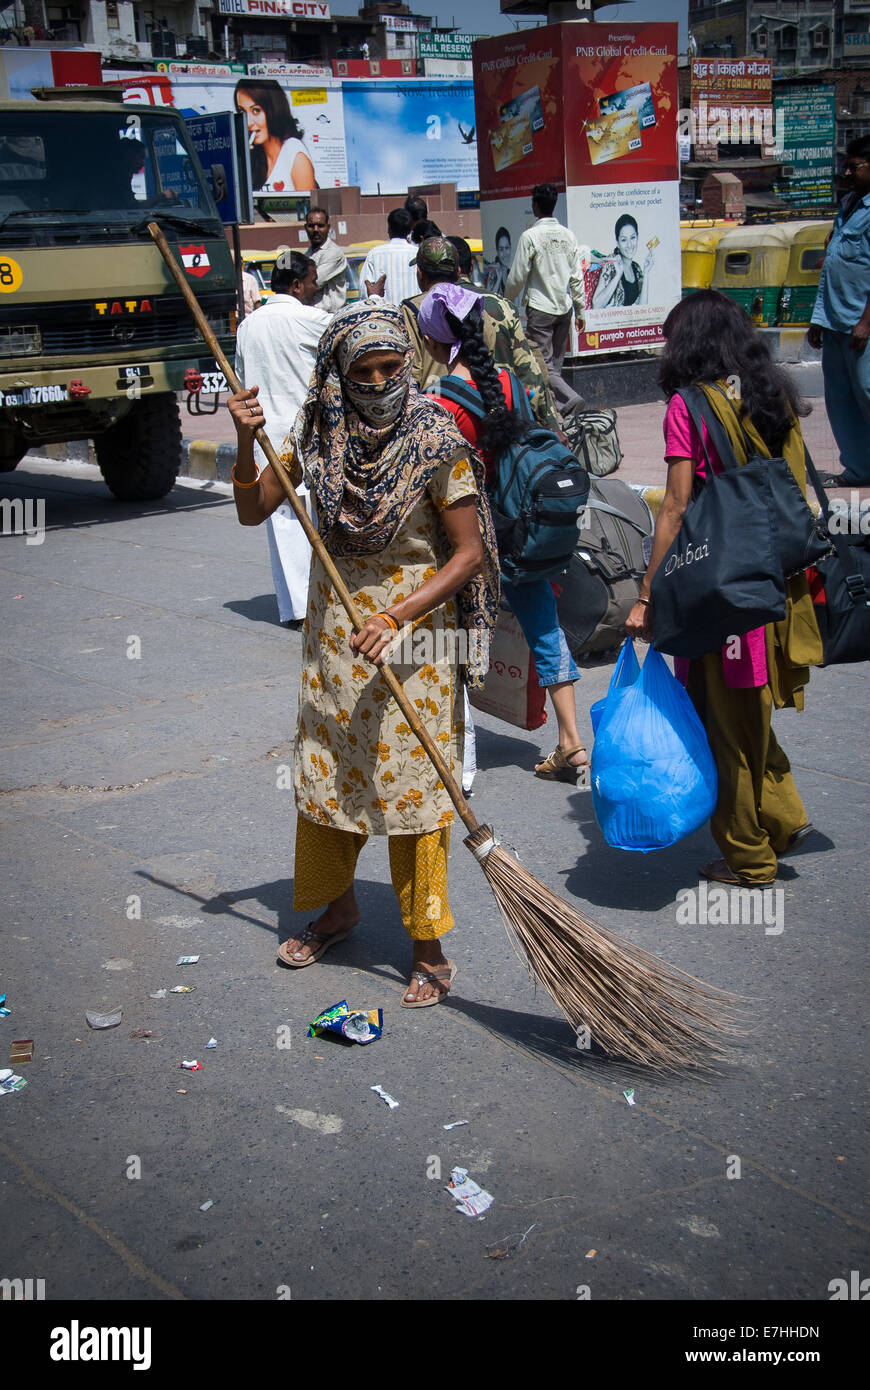 Dalit street cleaner from untouchable caste brushing street in delhi india - Stock Image